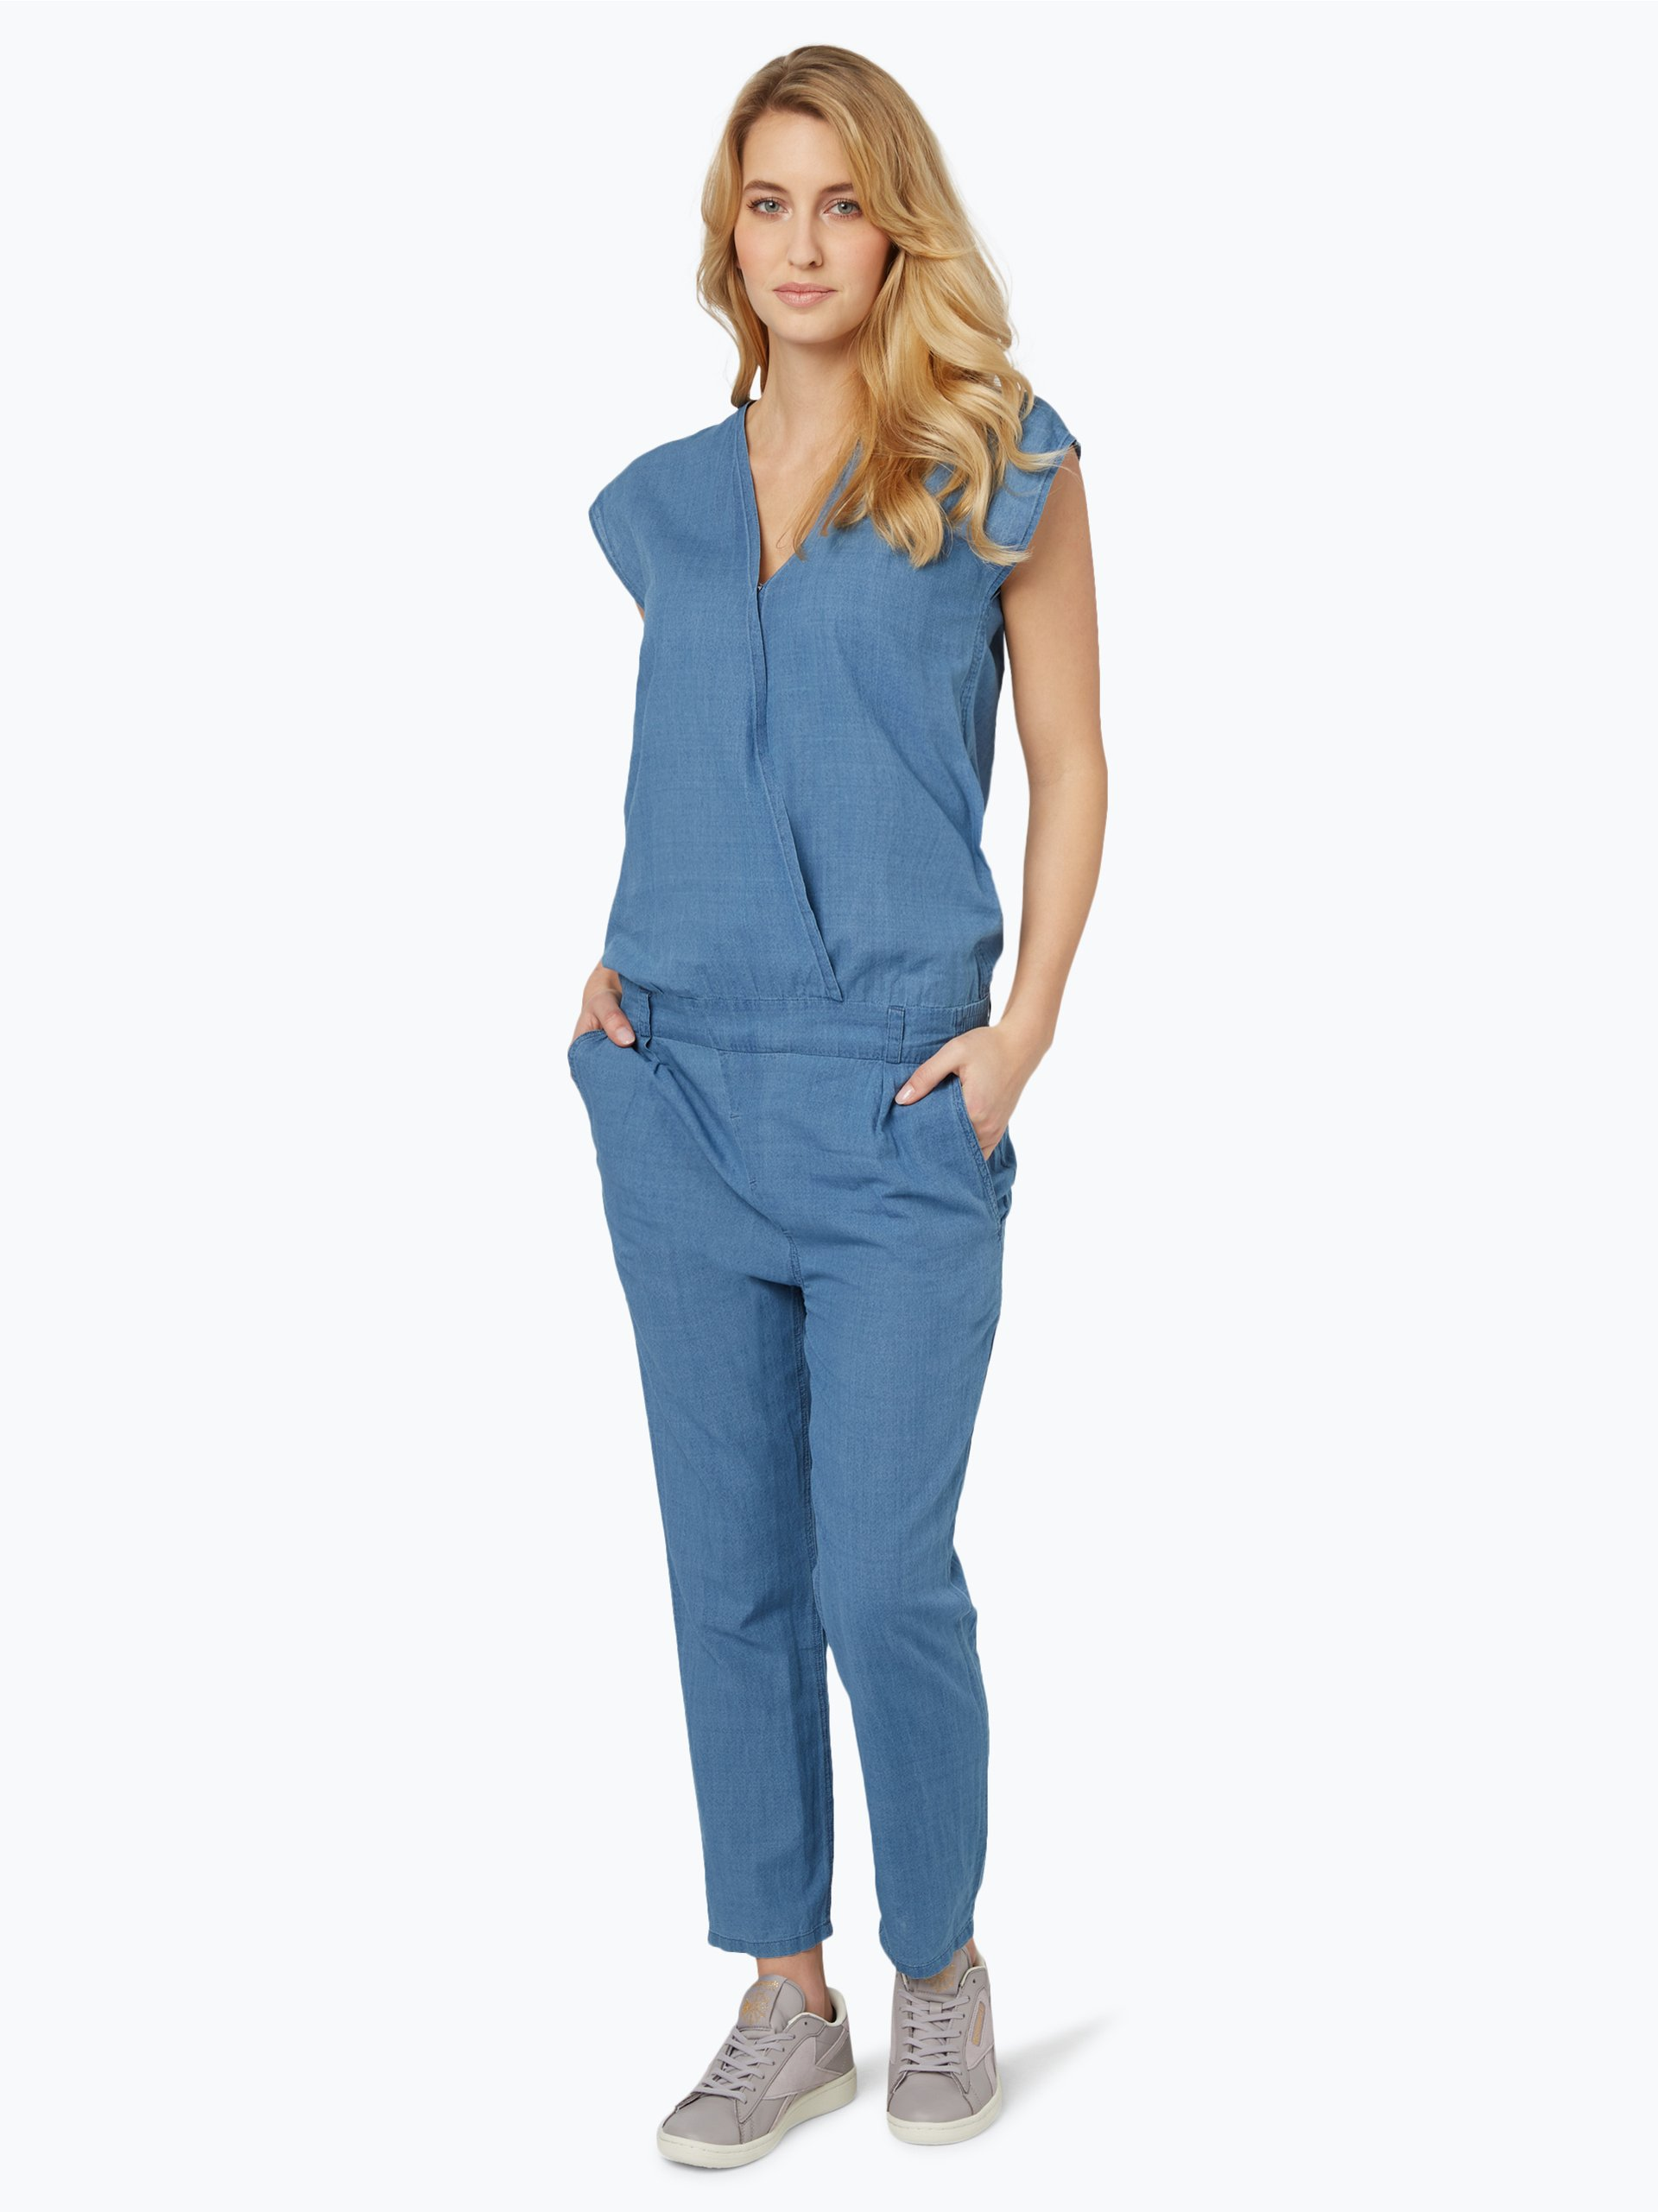 drykorn damen jeans jumpsuit tova blau uni online kaufen vangraaf com. Black Bedroom Furniture Sets. Home Design Ideas